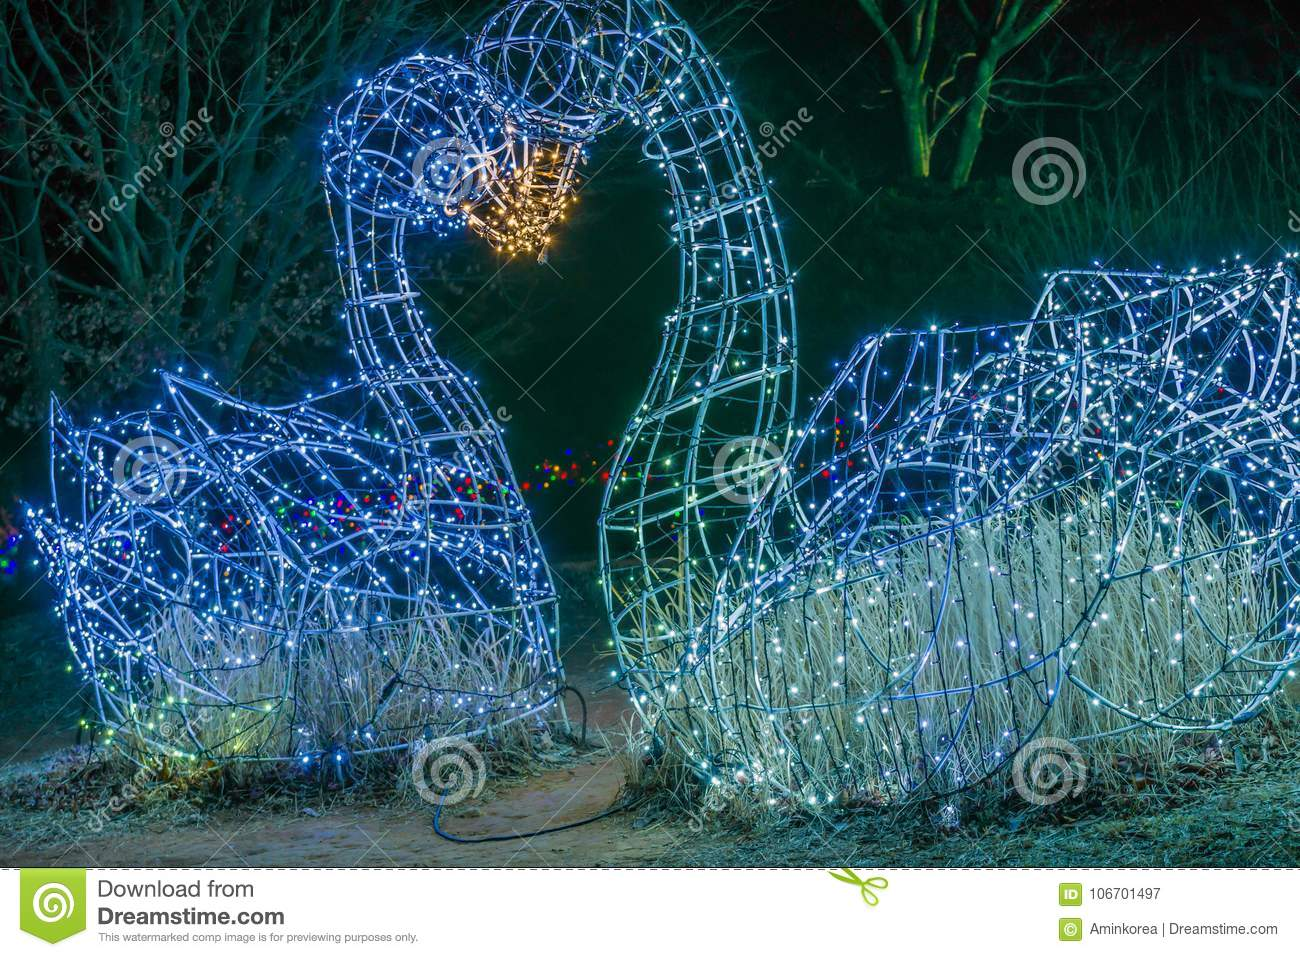 Two Swan Figurines Made Of Lights Kissing Stock Image - Image of ...